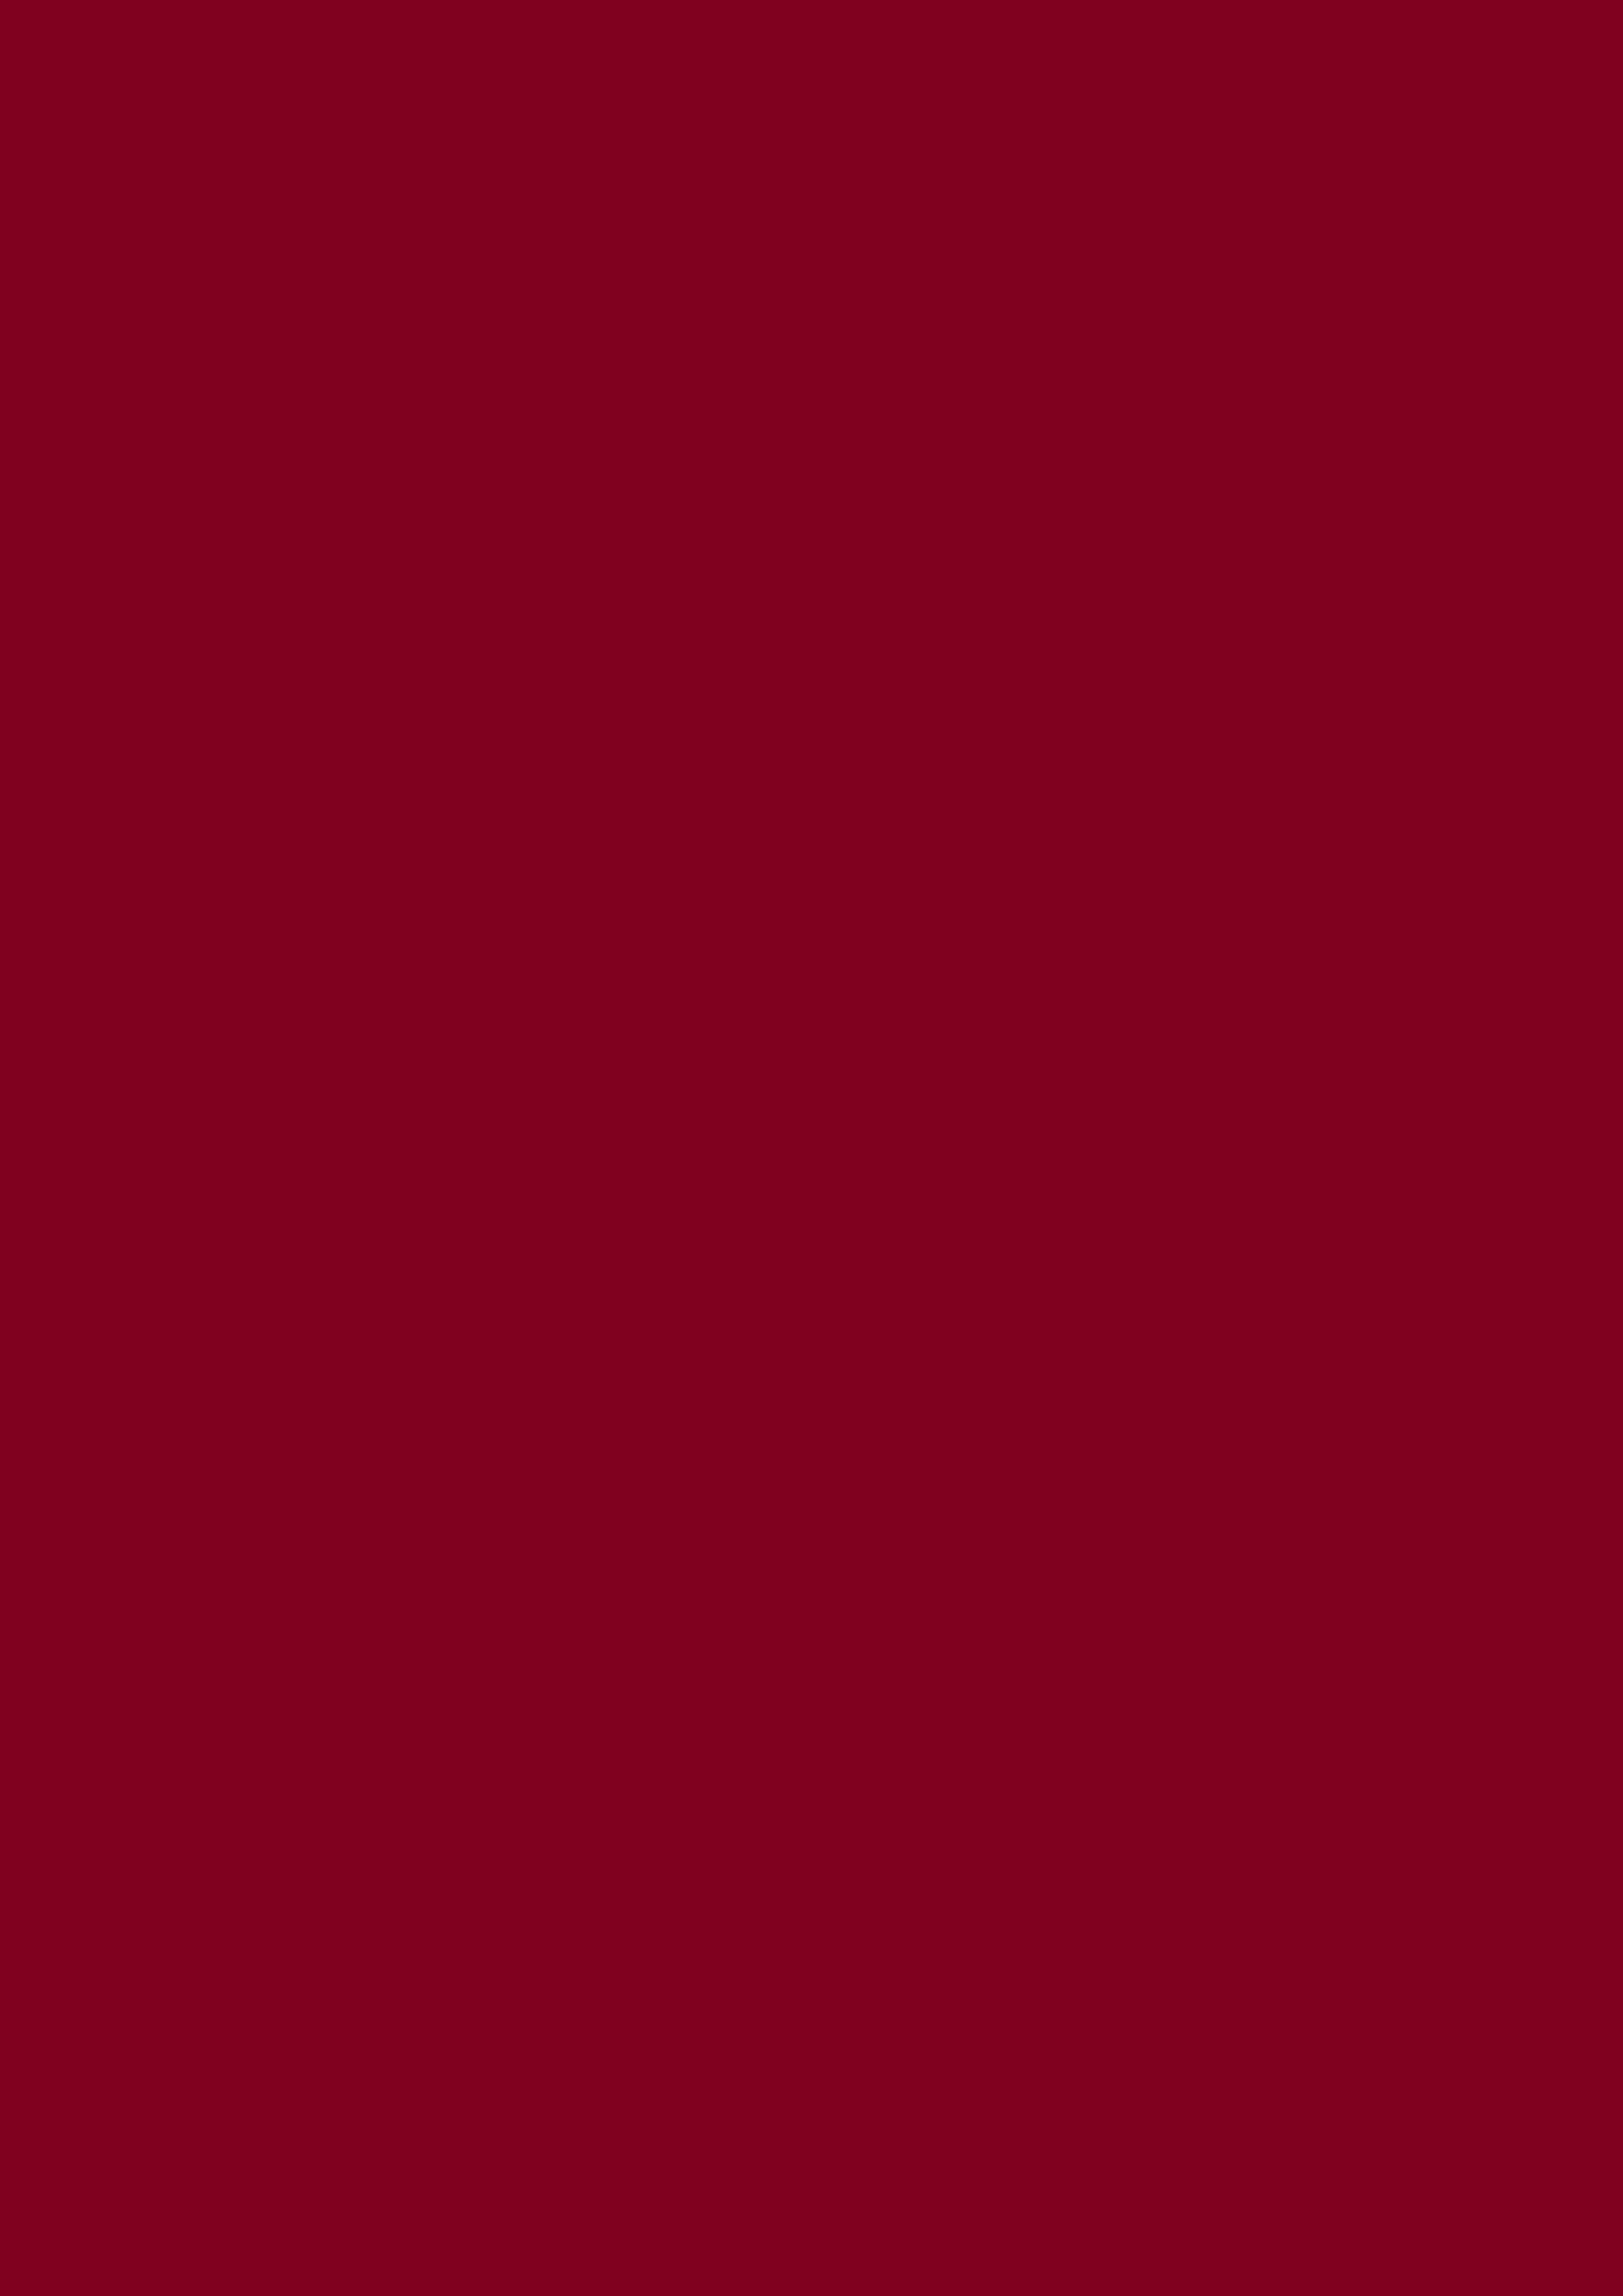 2480x3508 Burgundy Solid Color Background